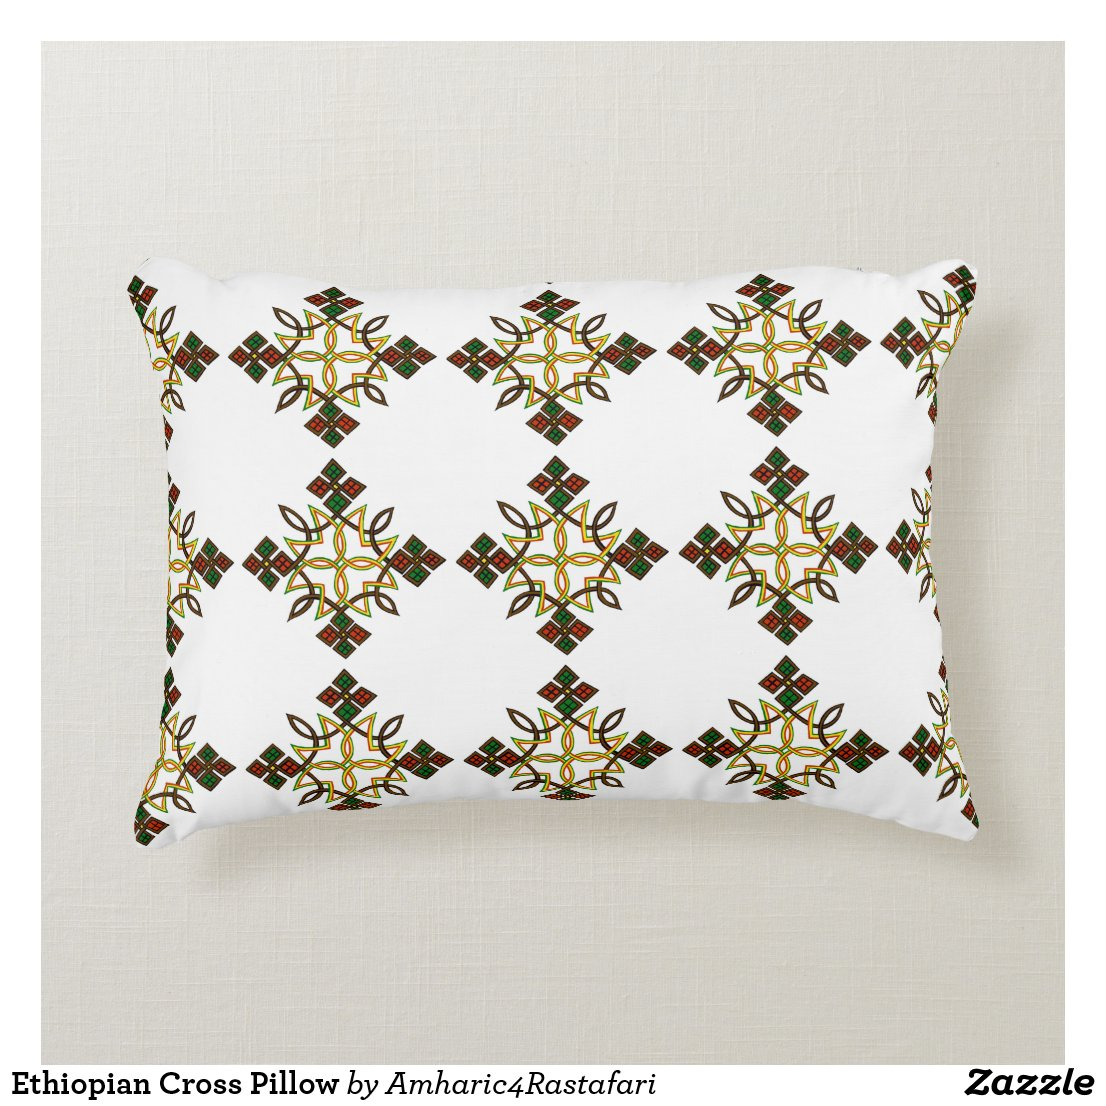 Ethiopian Cross Pillow